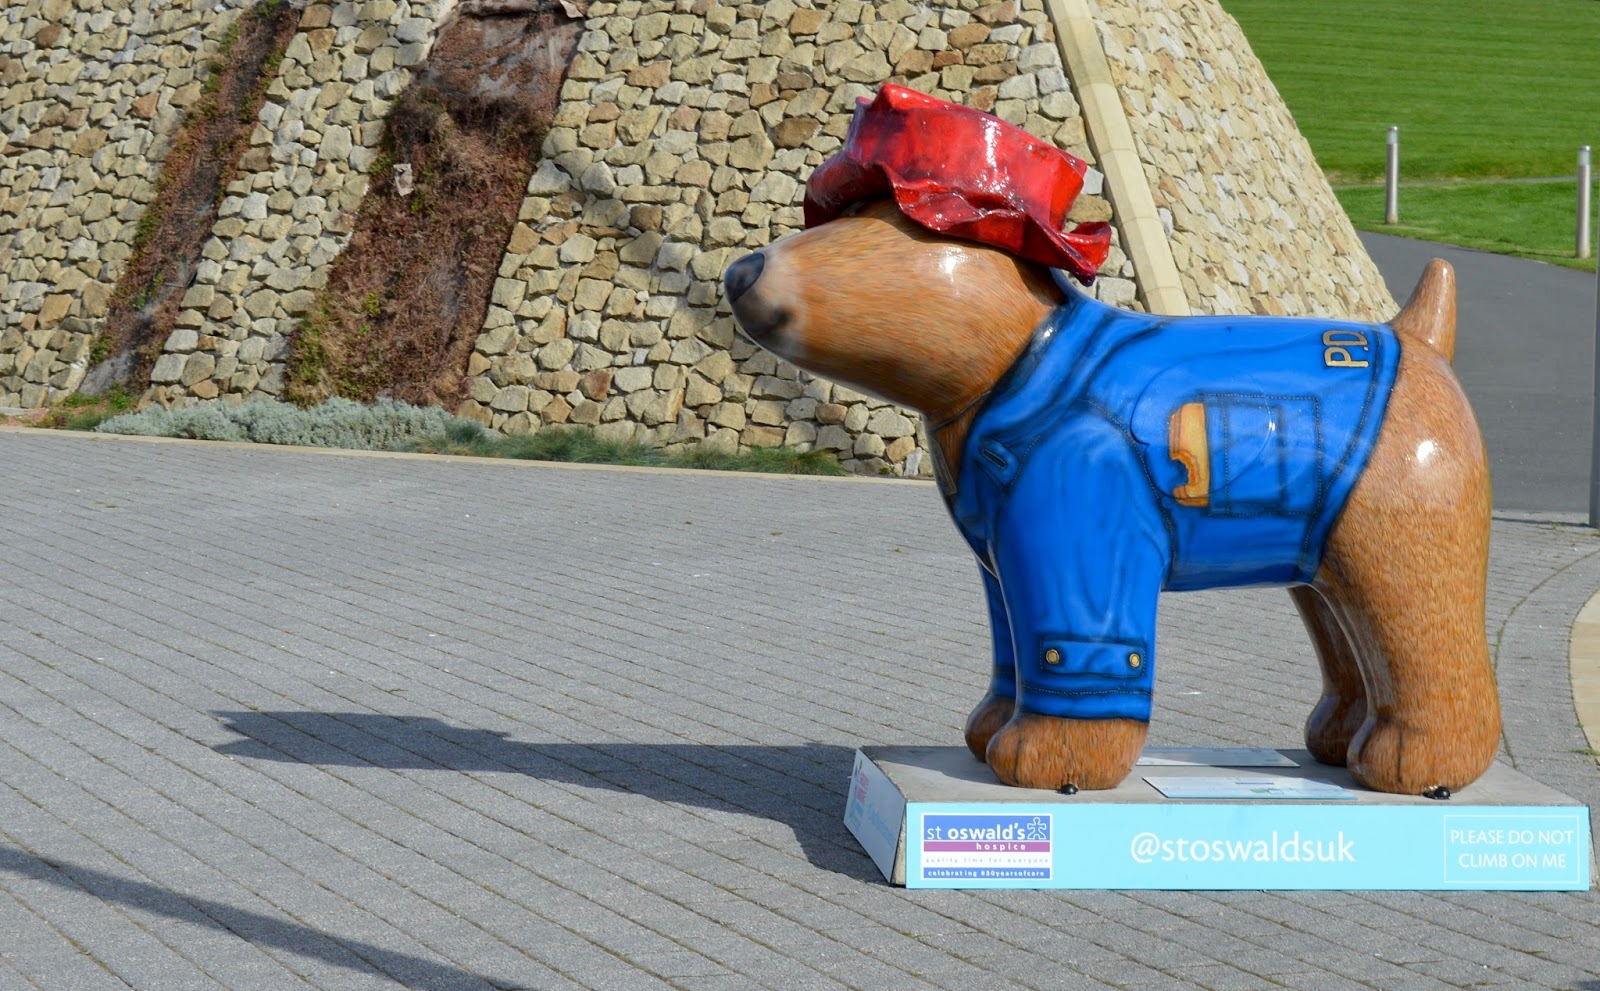 Explore the Great North Snowdogs with Tyne & Wear Metro - Pawdington, South Shields Customs House (sponsored by Tyne & Wear Metro)